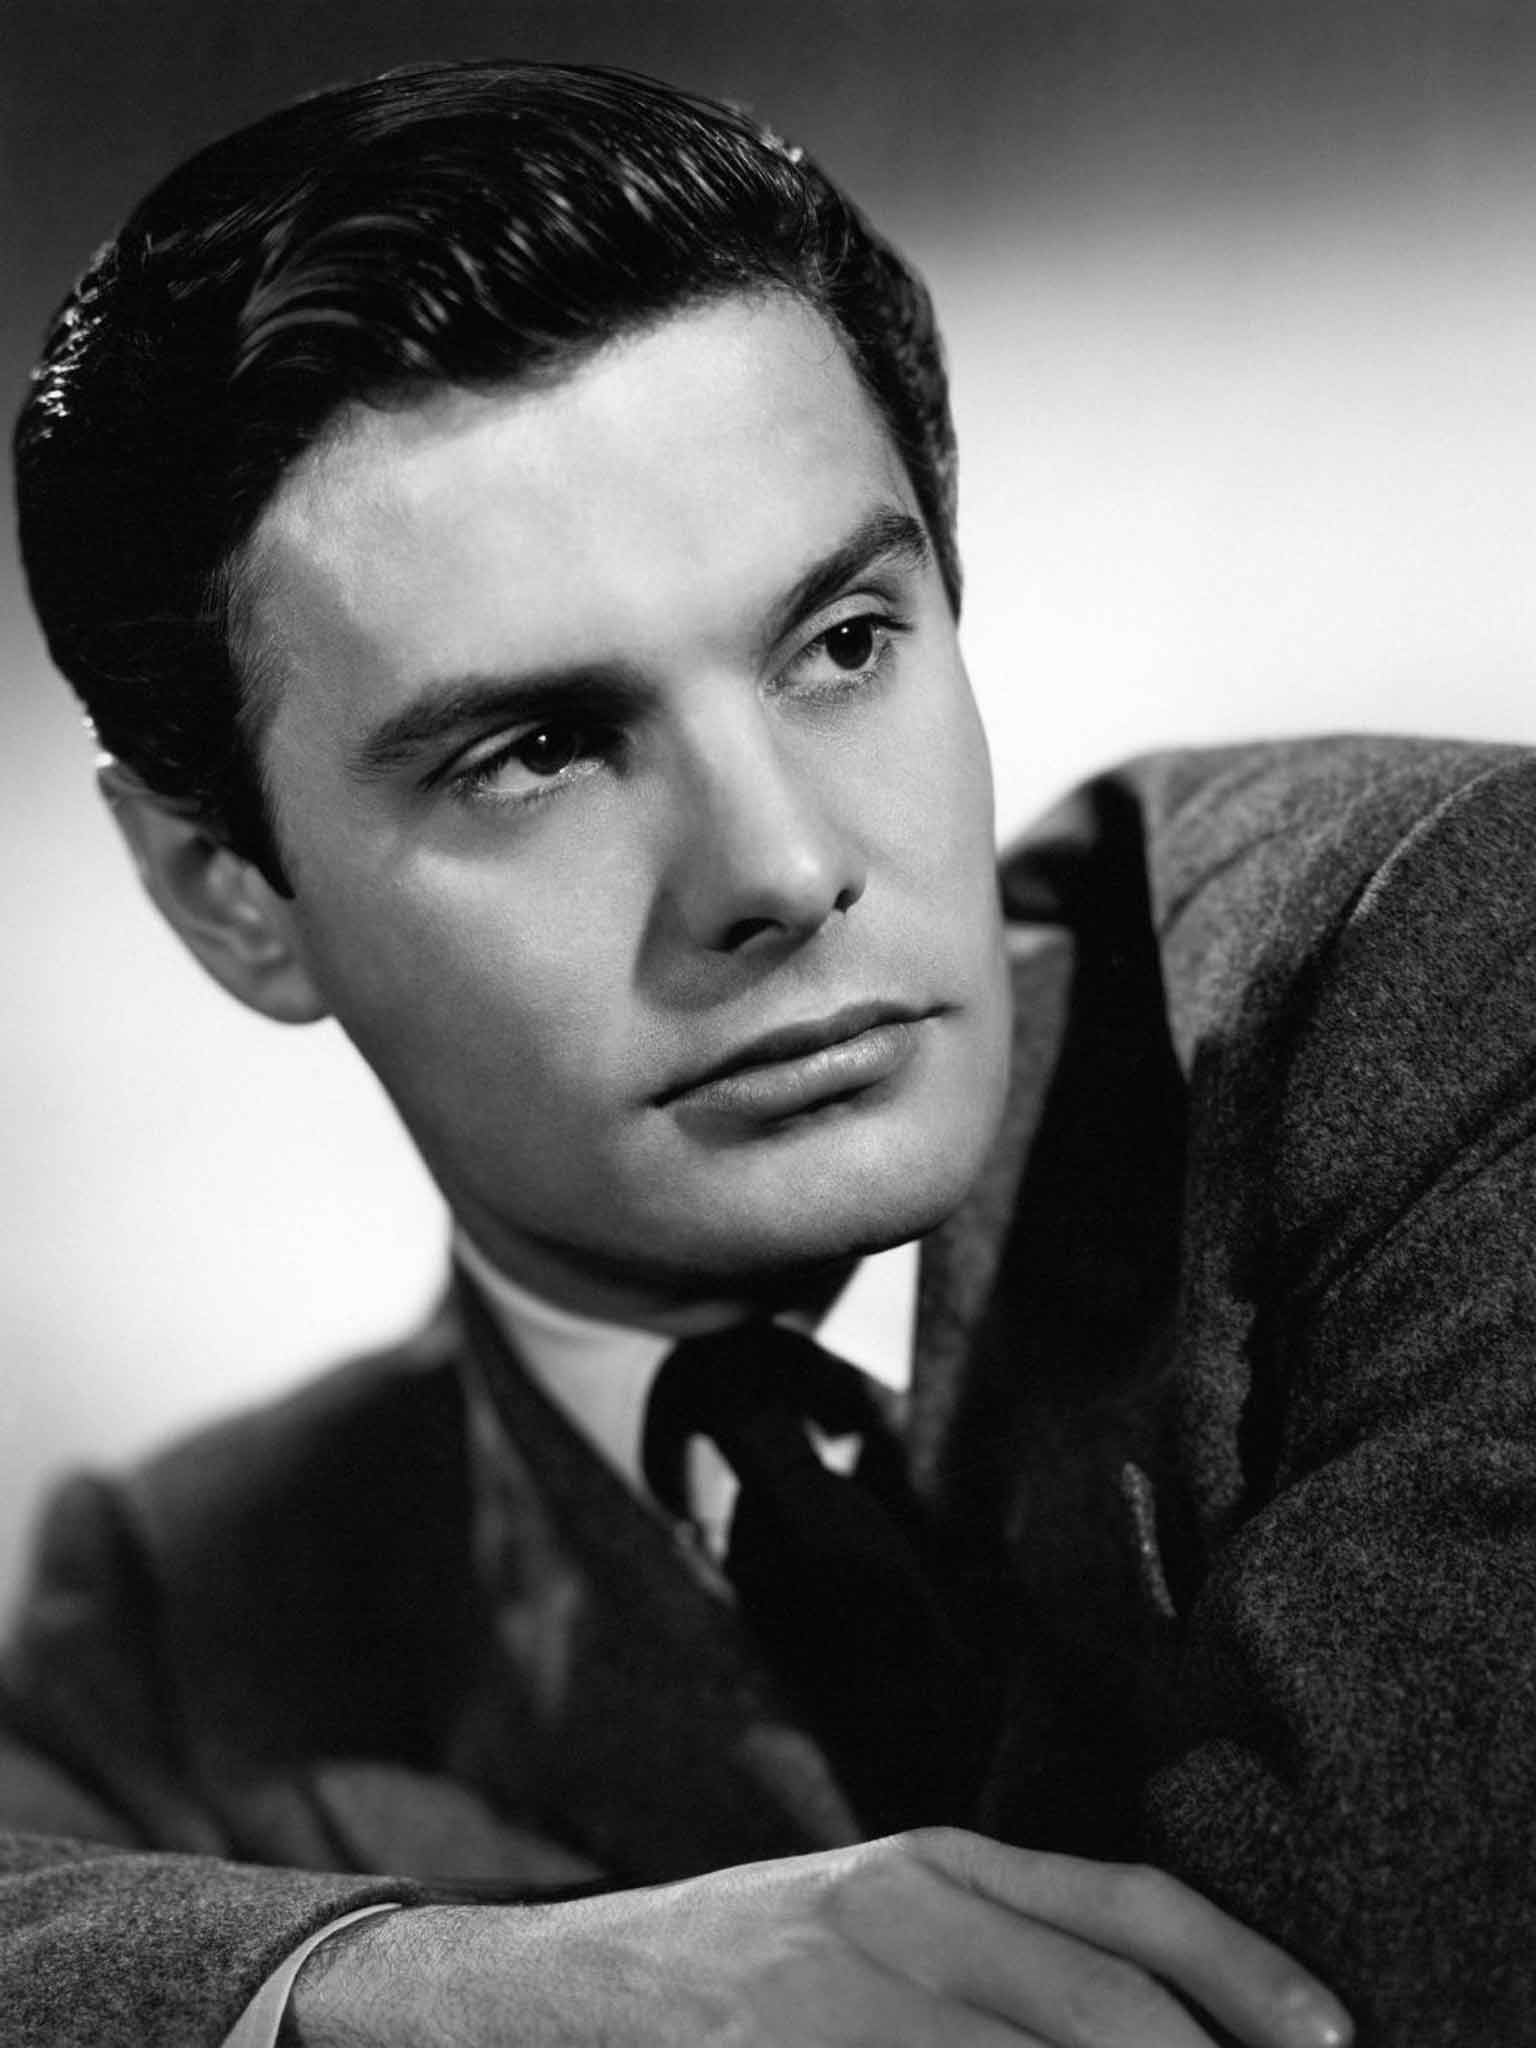 louis jourdan biographie